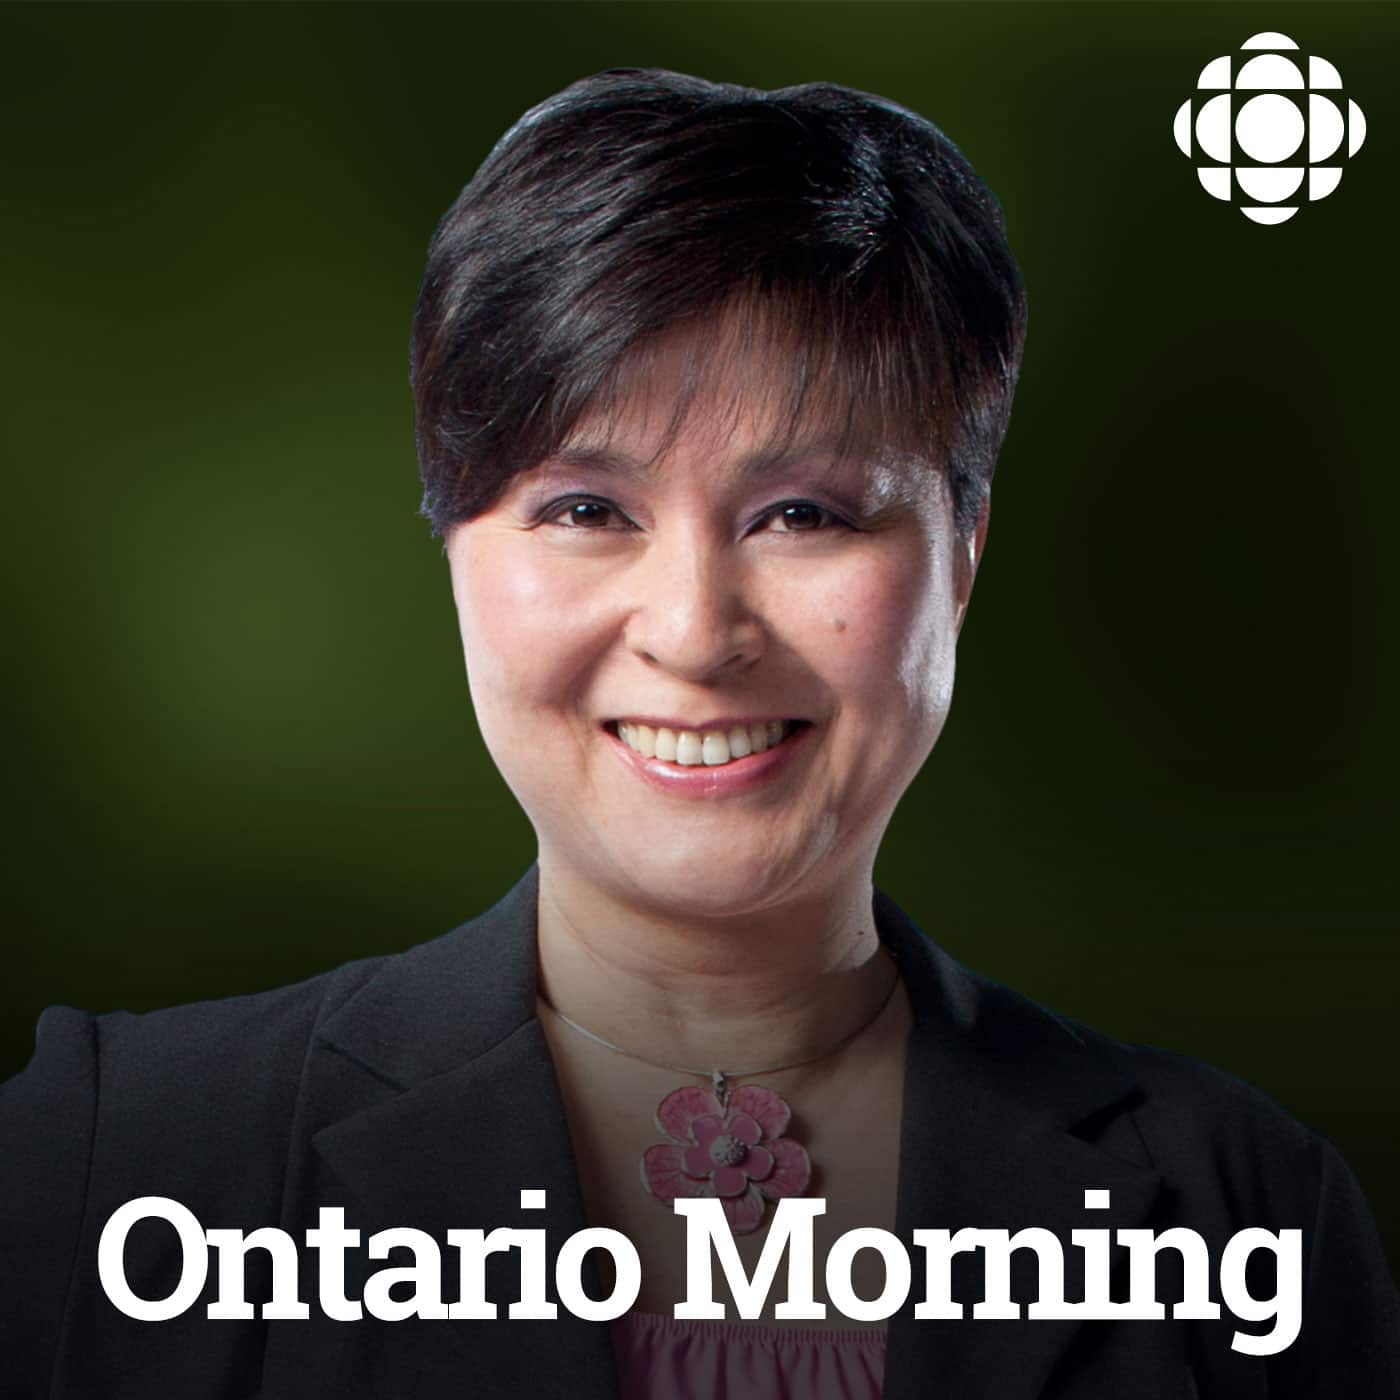 Cbc marketplace food dating app